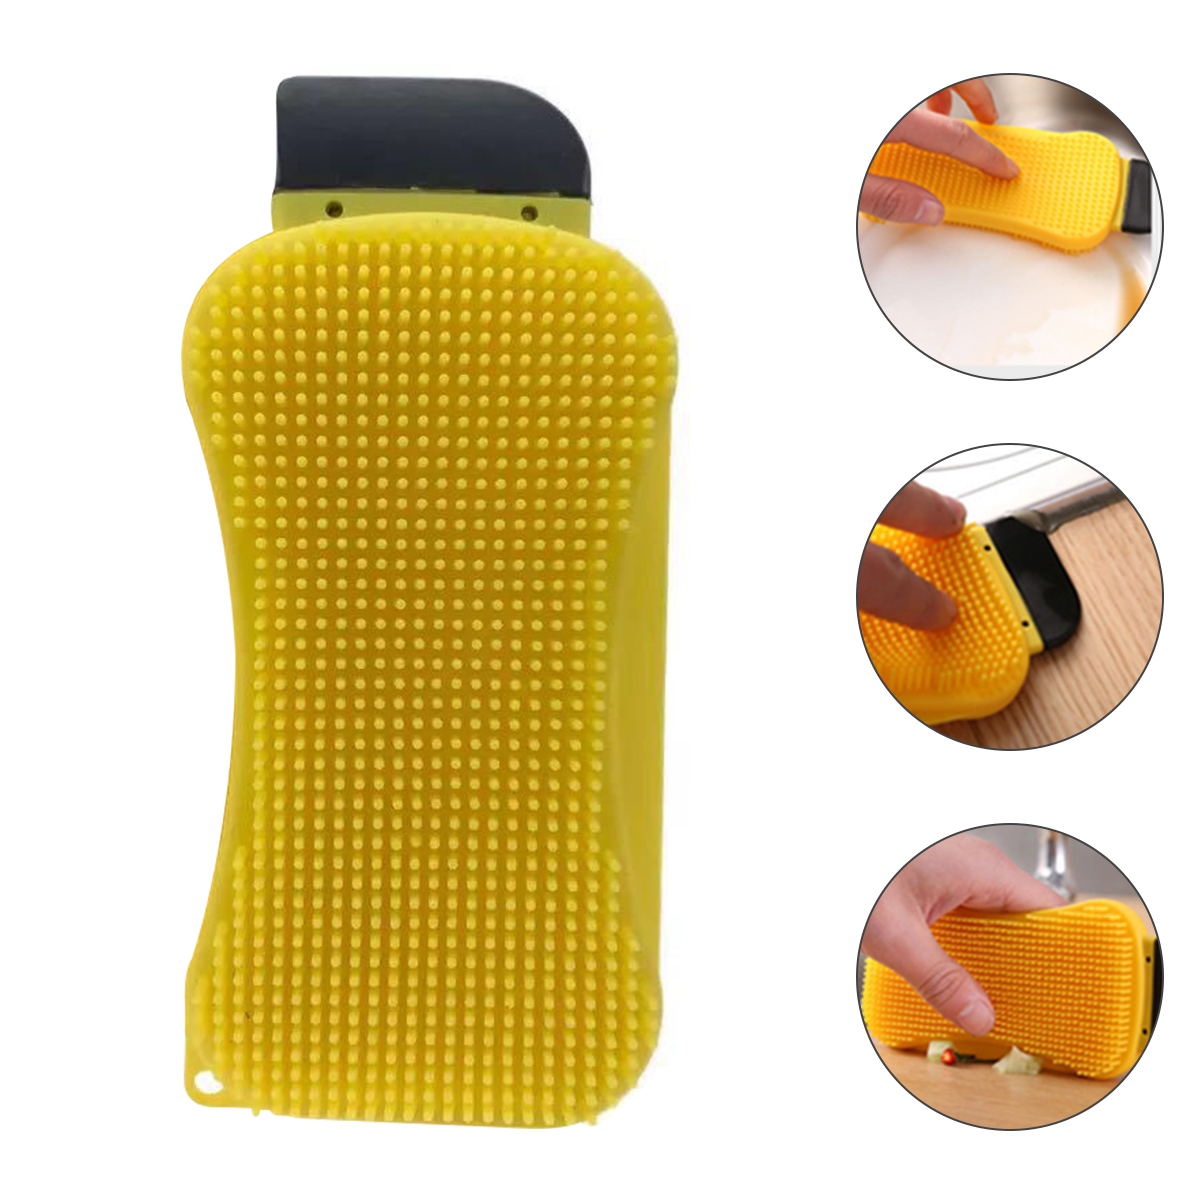 New 3 in 1 Kitchen Cleaning Tool Sponge Brush Silicone Cleaning Brush Wash Pan Dish Bowl Sponge Scraper With Soap Dispenser